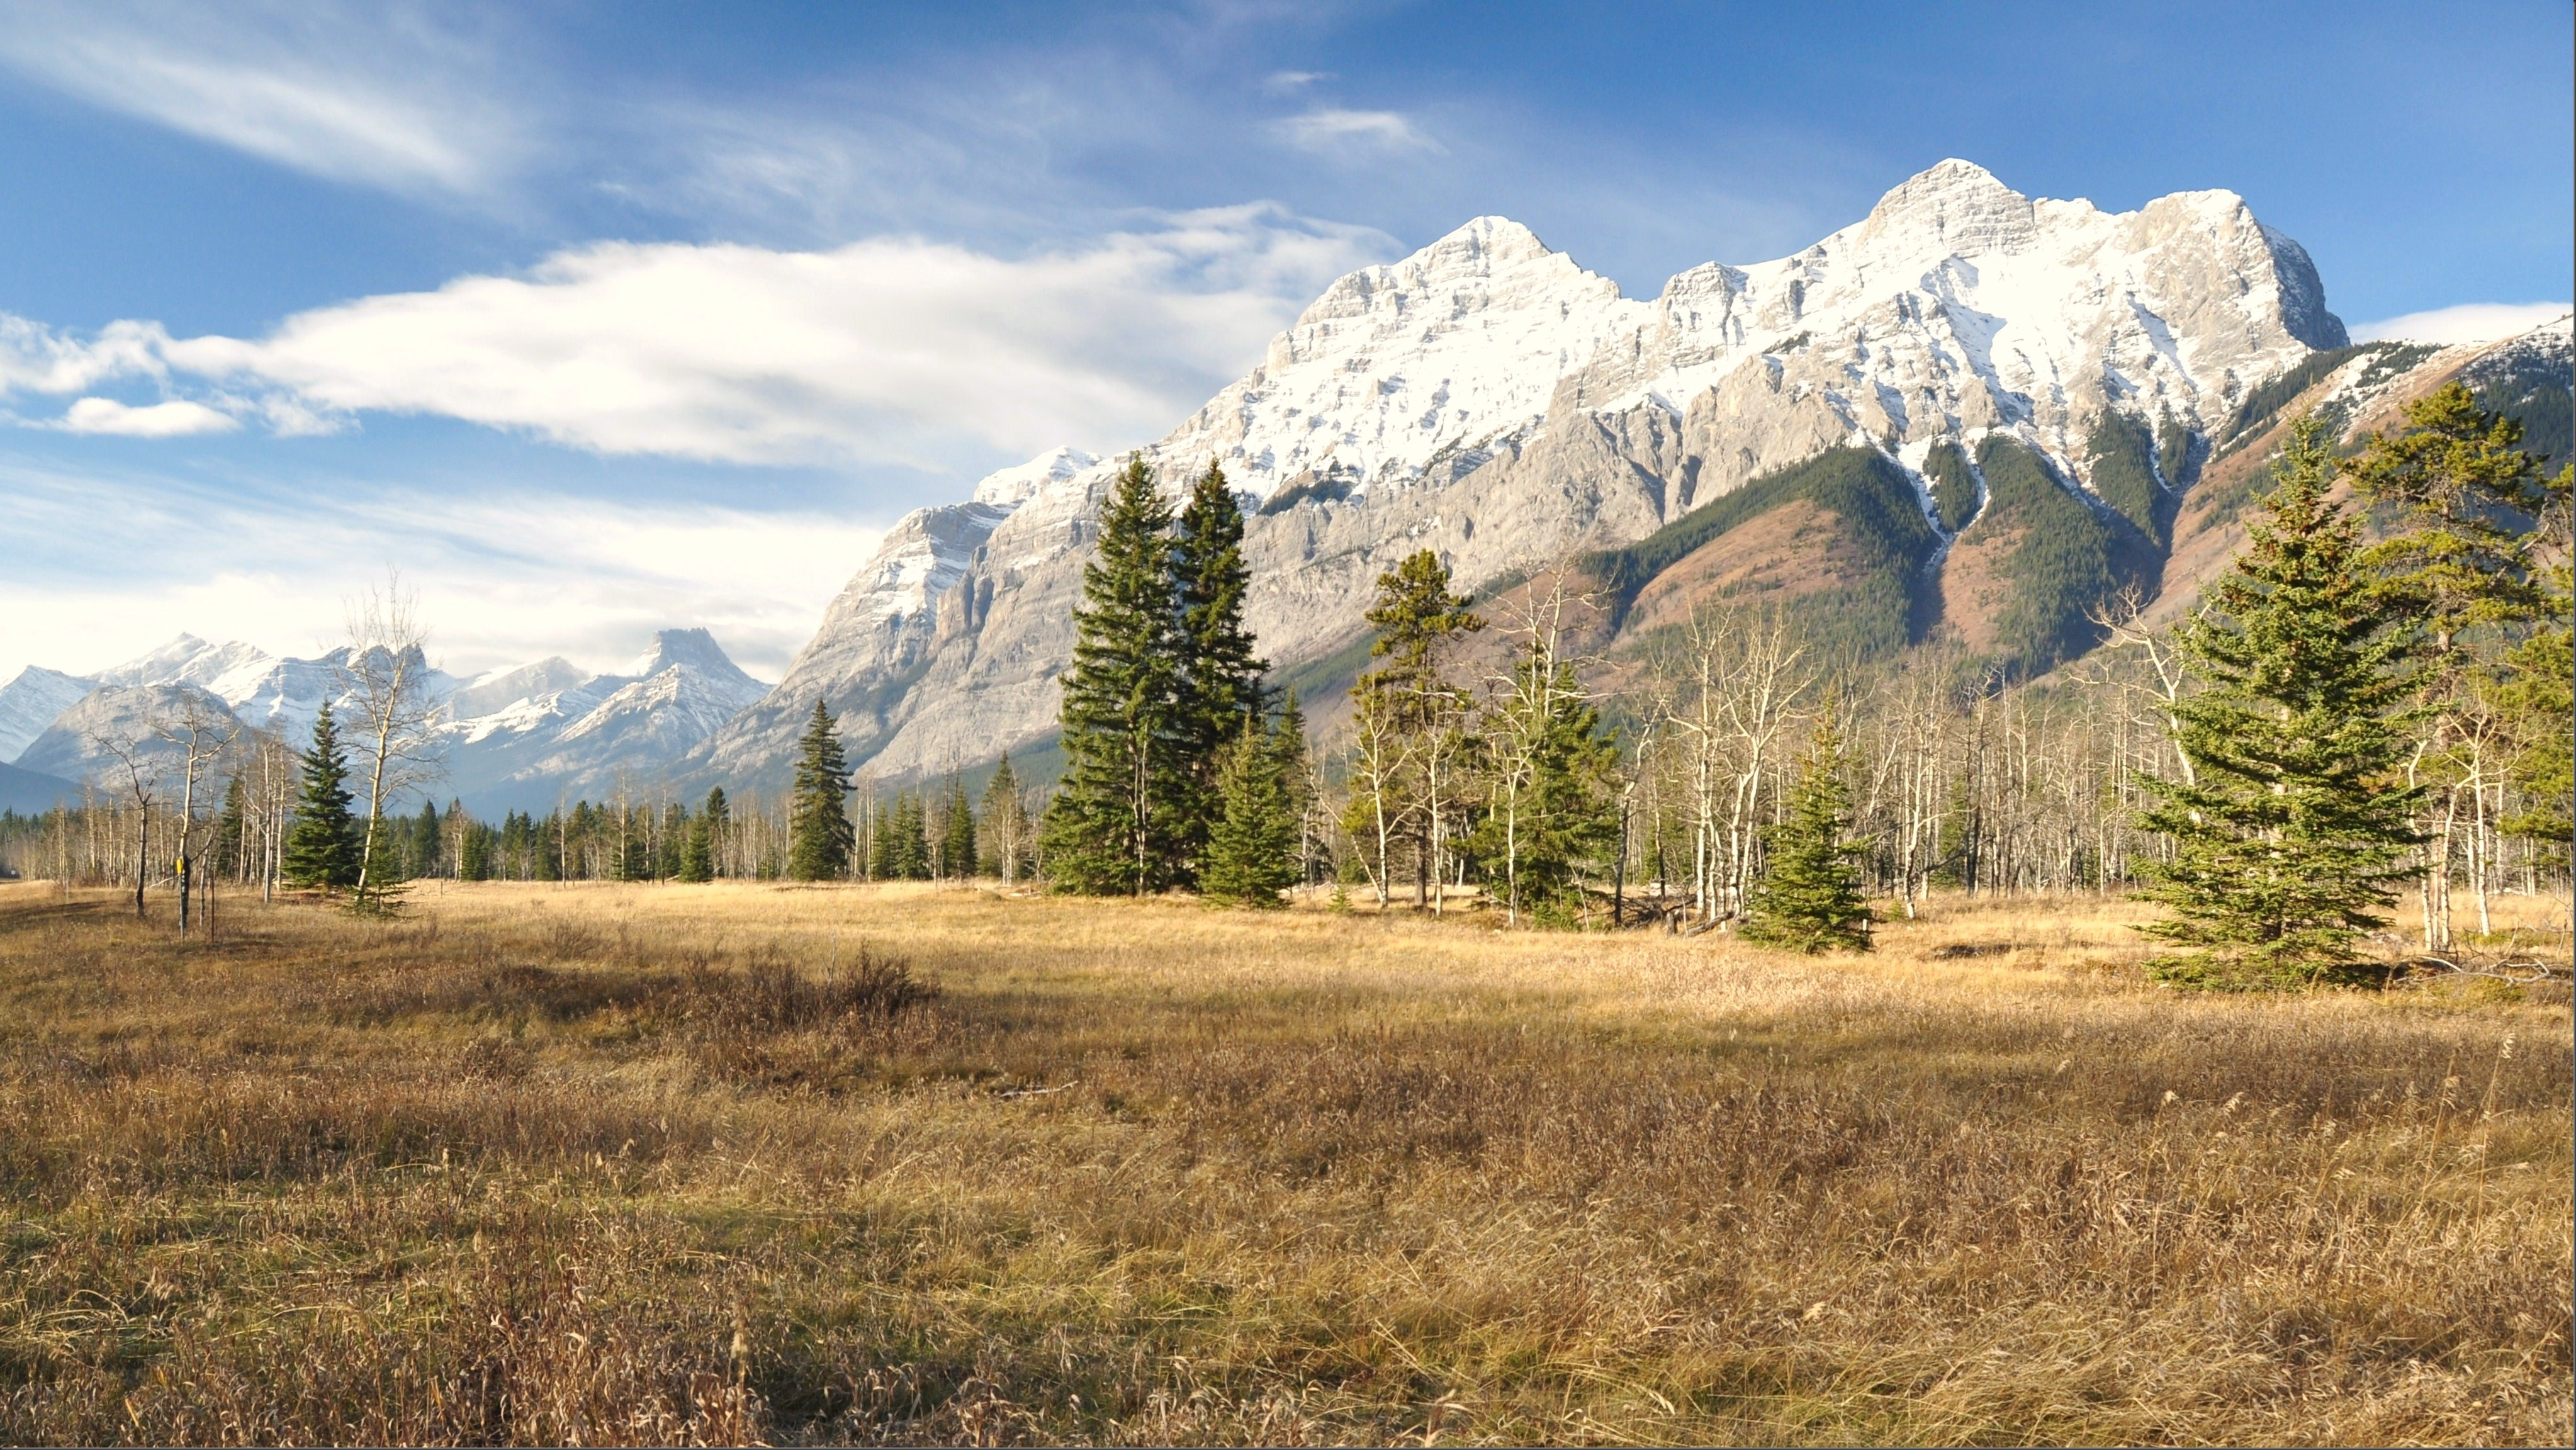 Kananaskis Country, Alberta - Bruce Witzel photo